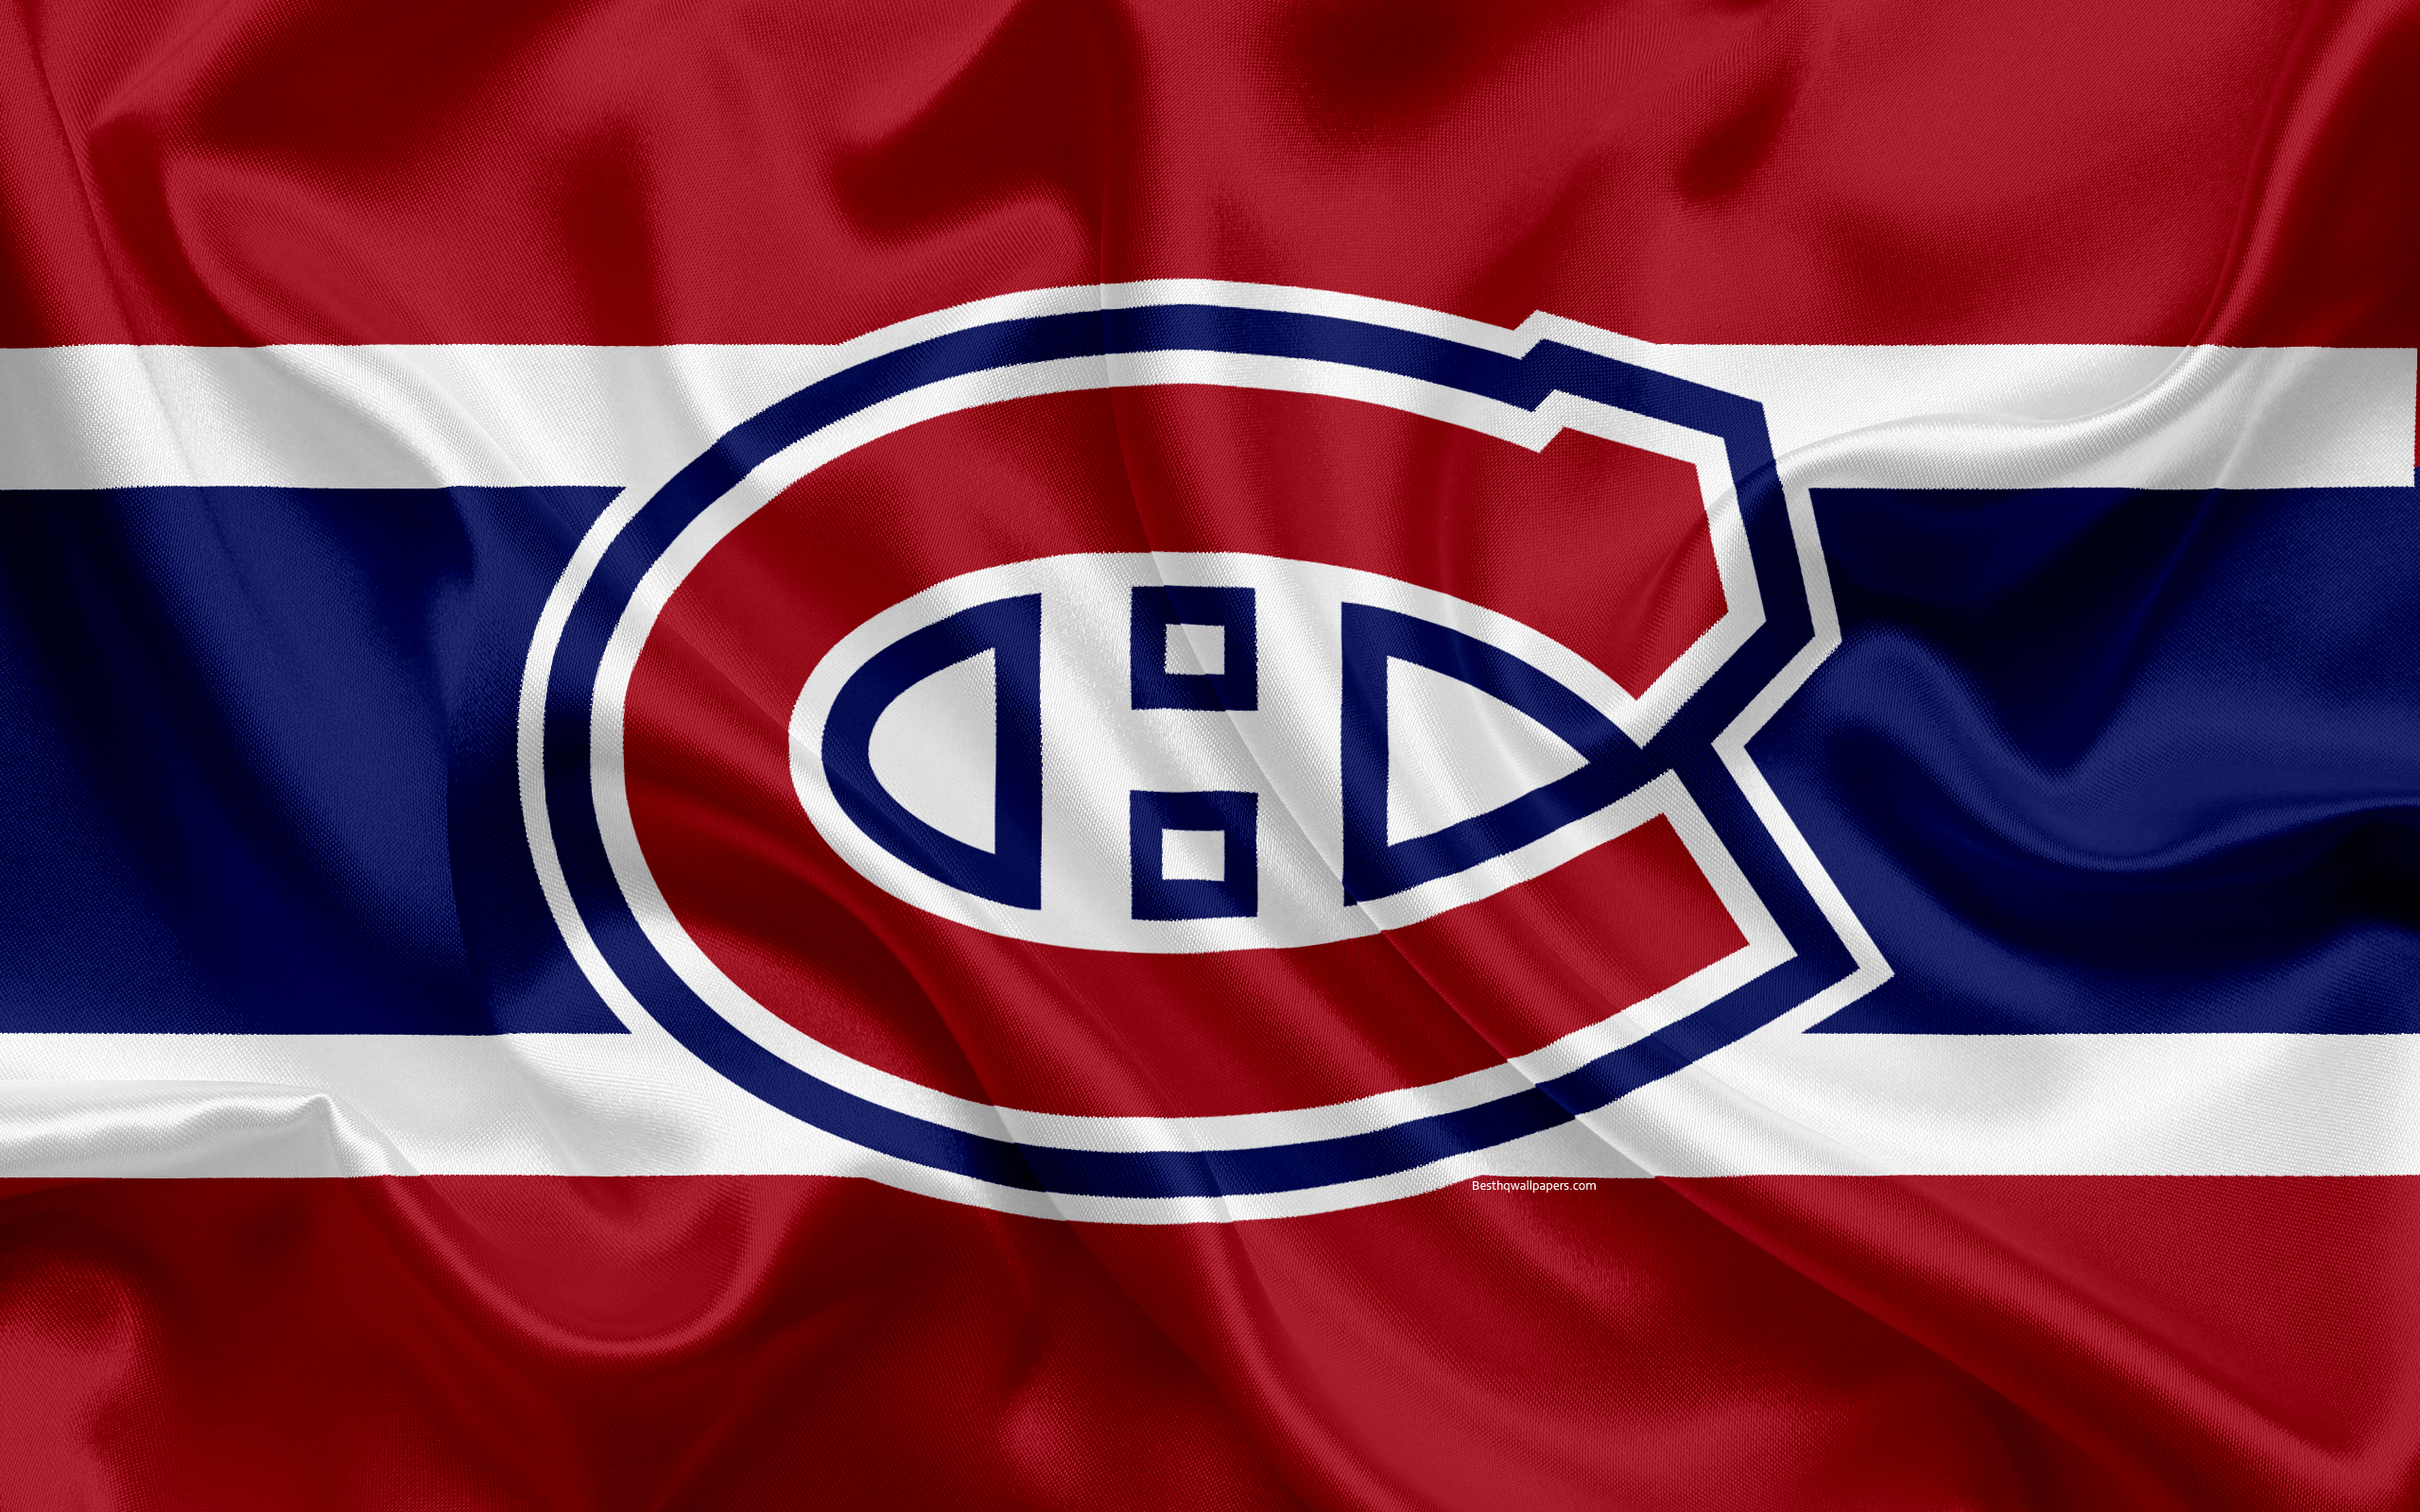 Download wallpapers montreal canadiens hockey club nhl emblem logo national hockey league - Logo des canadiens de montreal ...